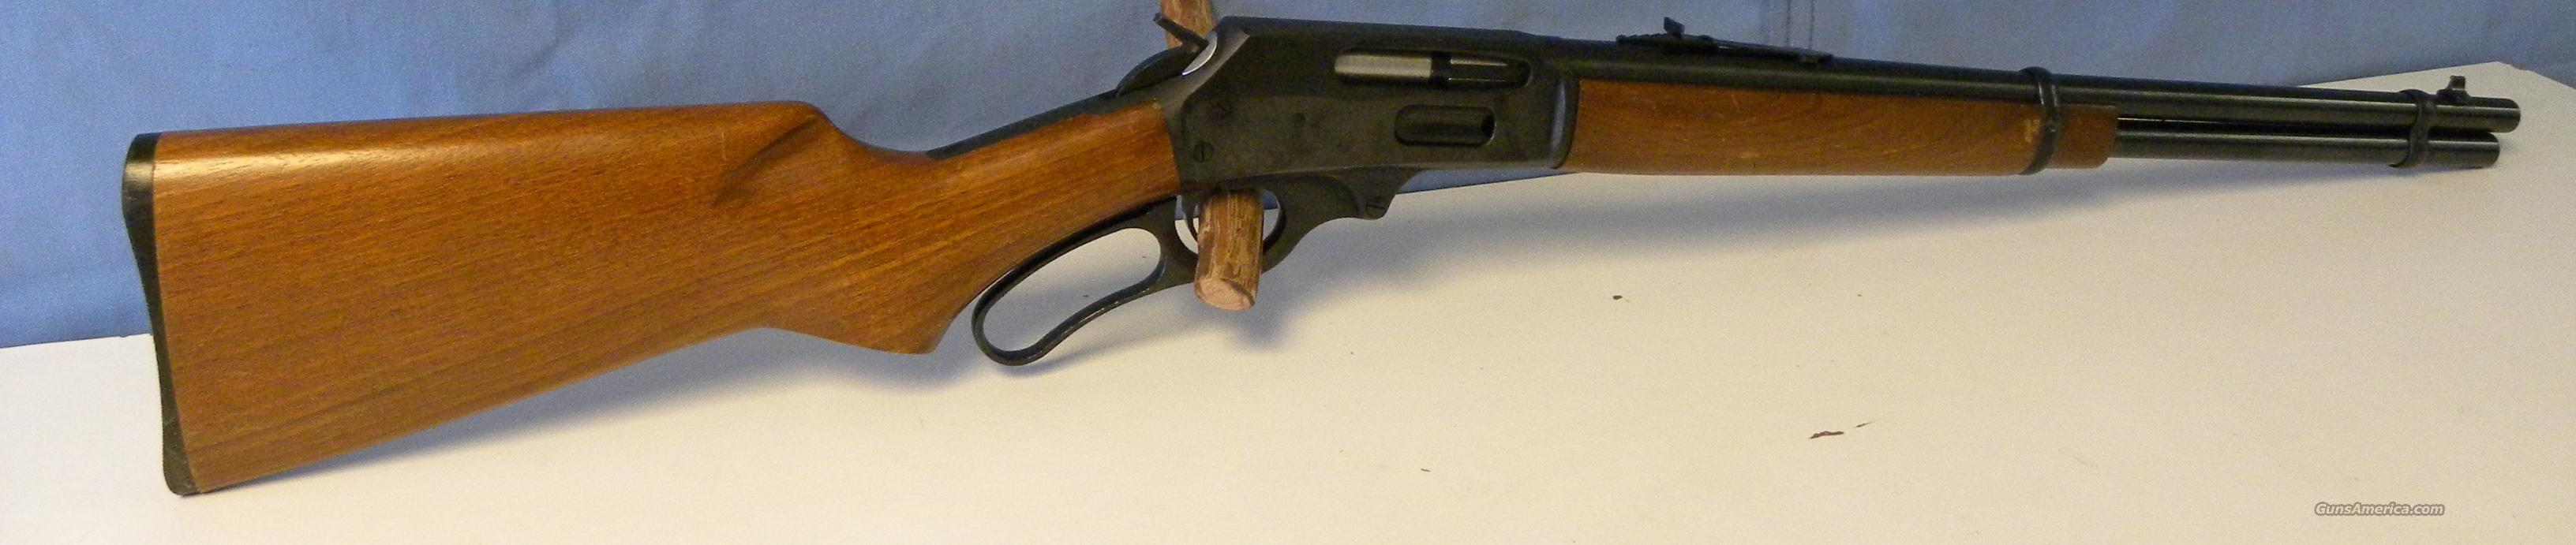 Marlin 336 (200M Revelation)   Guns > Rifles > Marlin Rifles > Modern > Lever Action